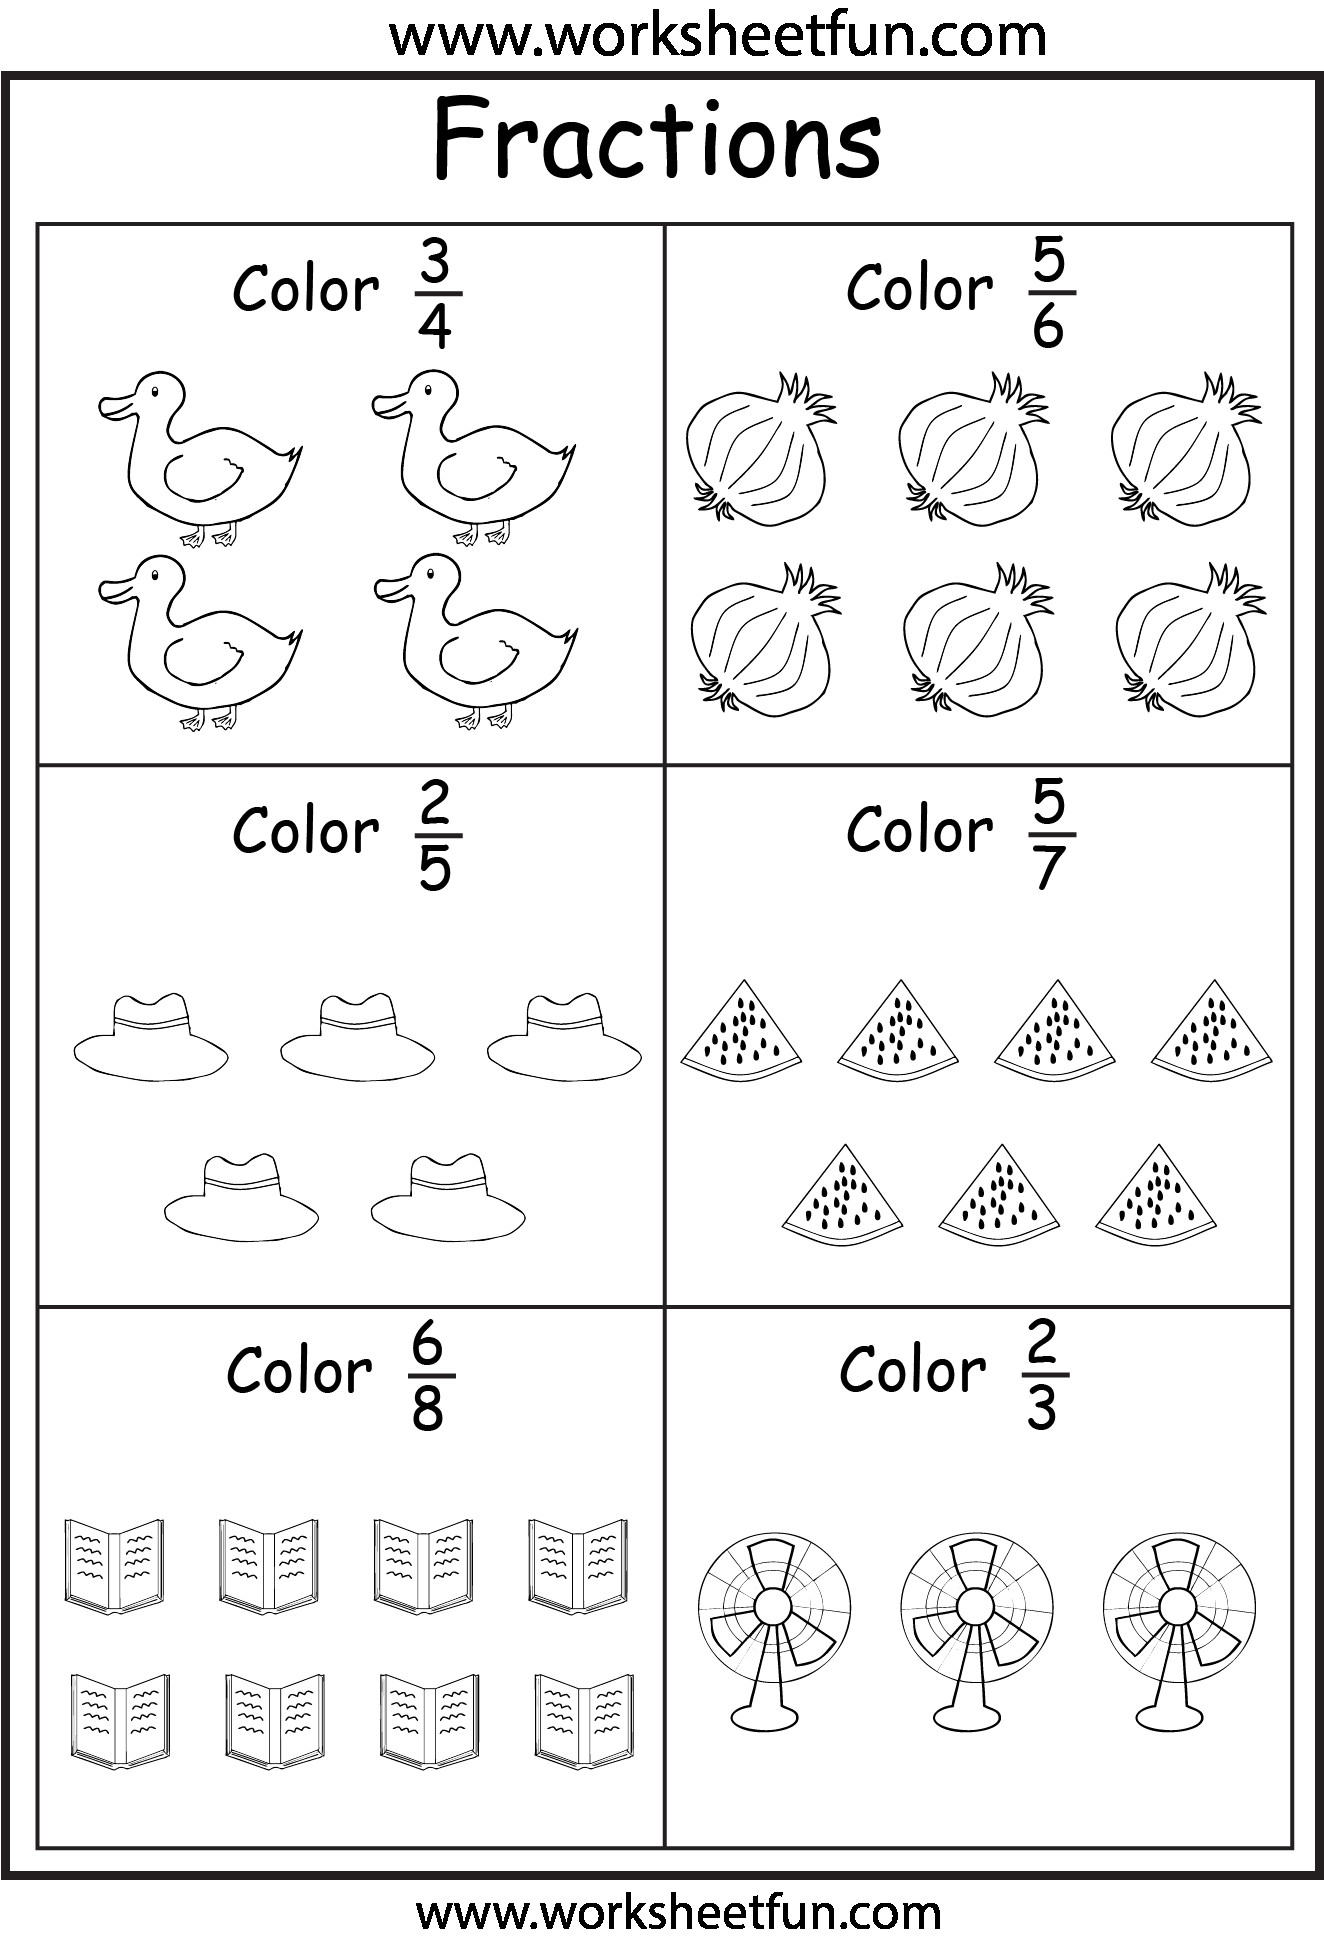 hight resolution of 4 Free Math Worksheets Third Grade 3 Fractions and Decimals Equivalent  Fractions - apocalomegaproductions.com